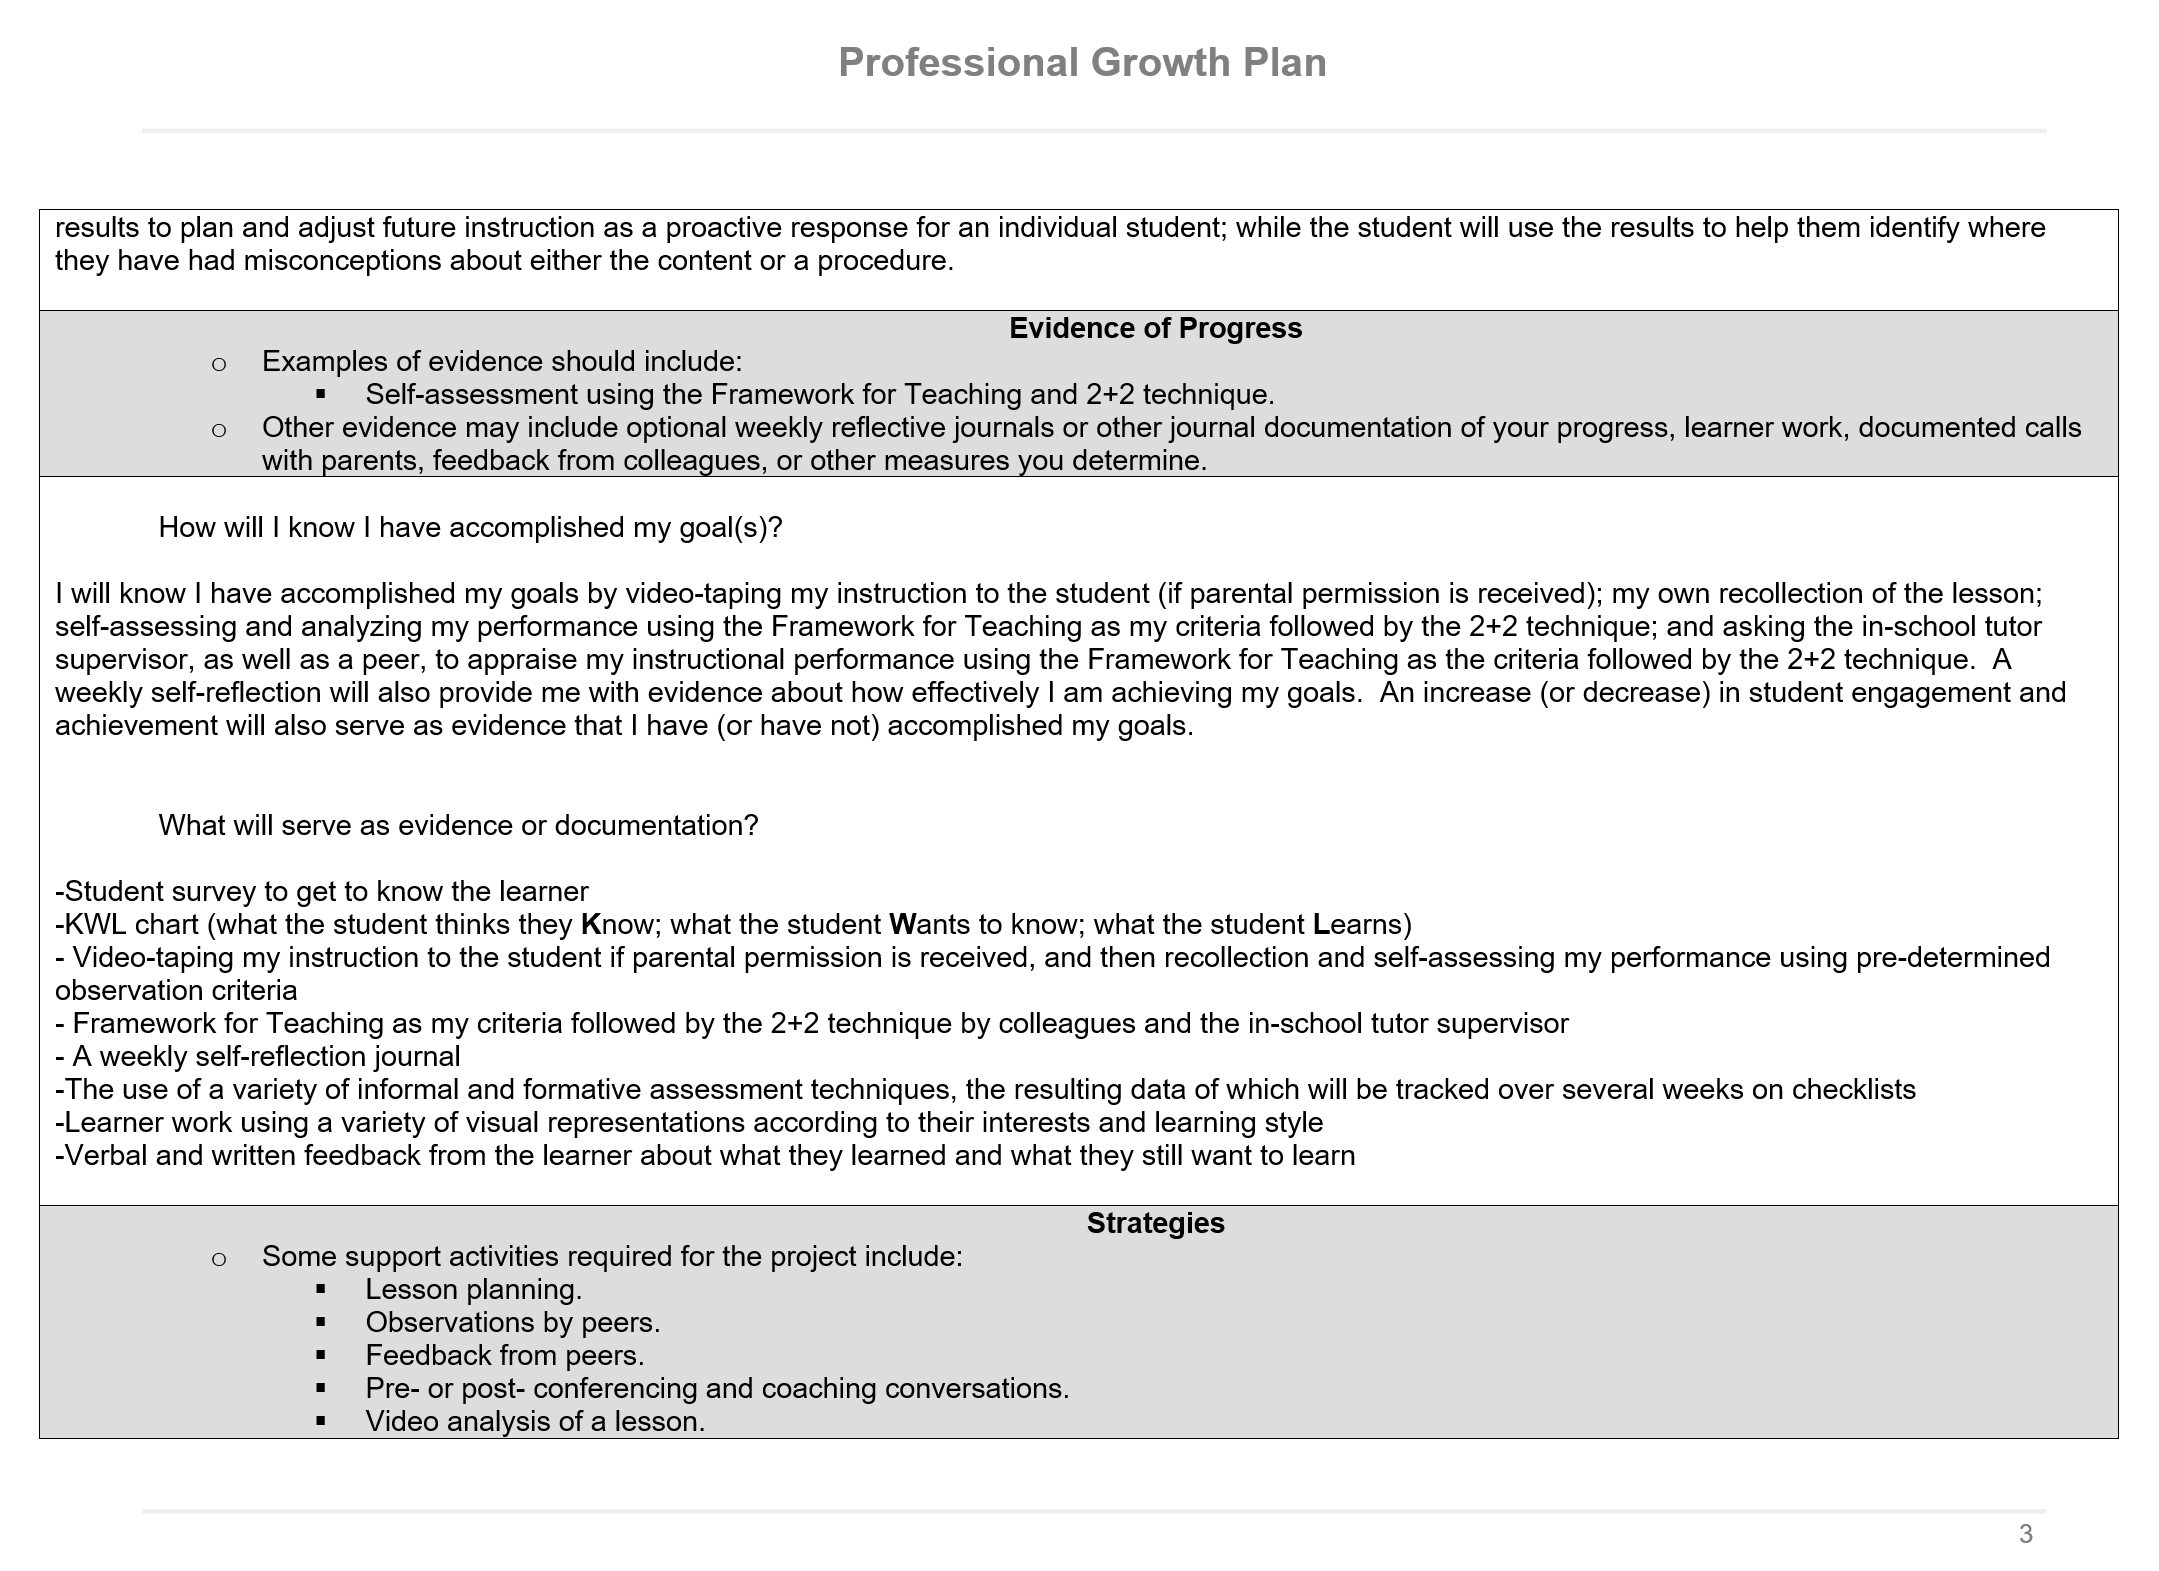 professional growth plan p 3 of 7